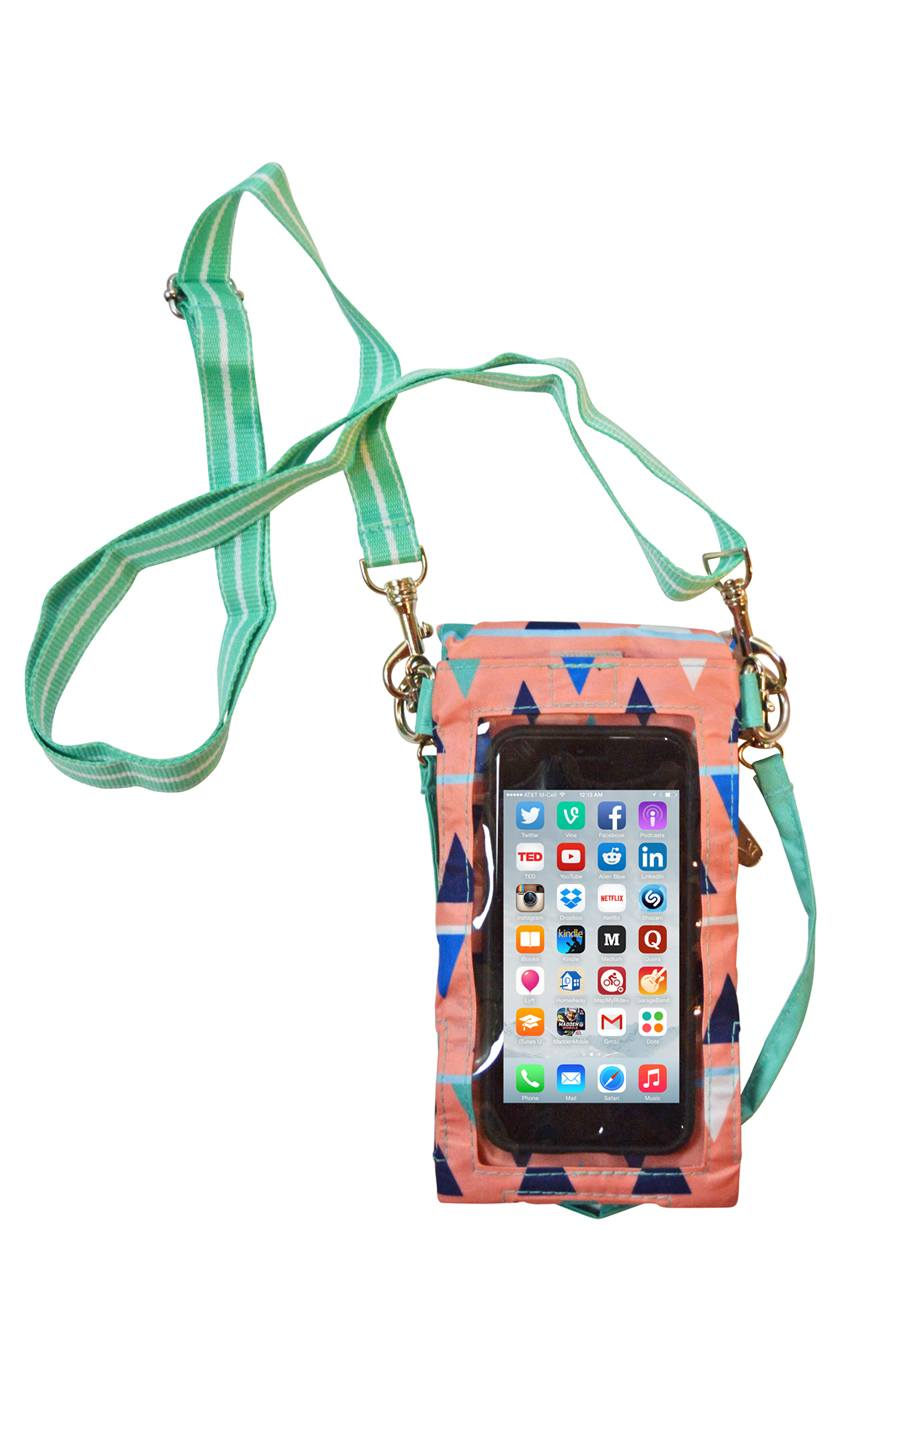 All For Color-Sand Castles Smartphone Crossbody Bag - FINAL SALE-Smartphone Crossbody Bag